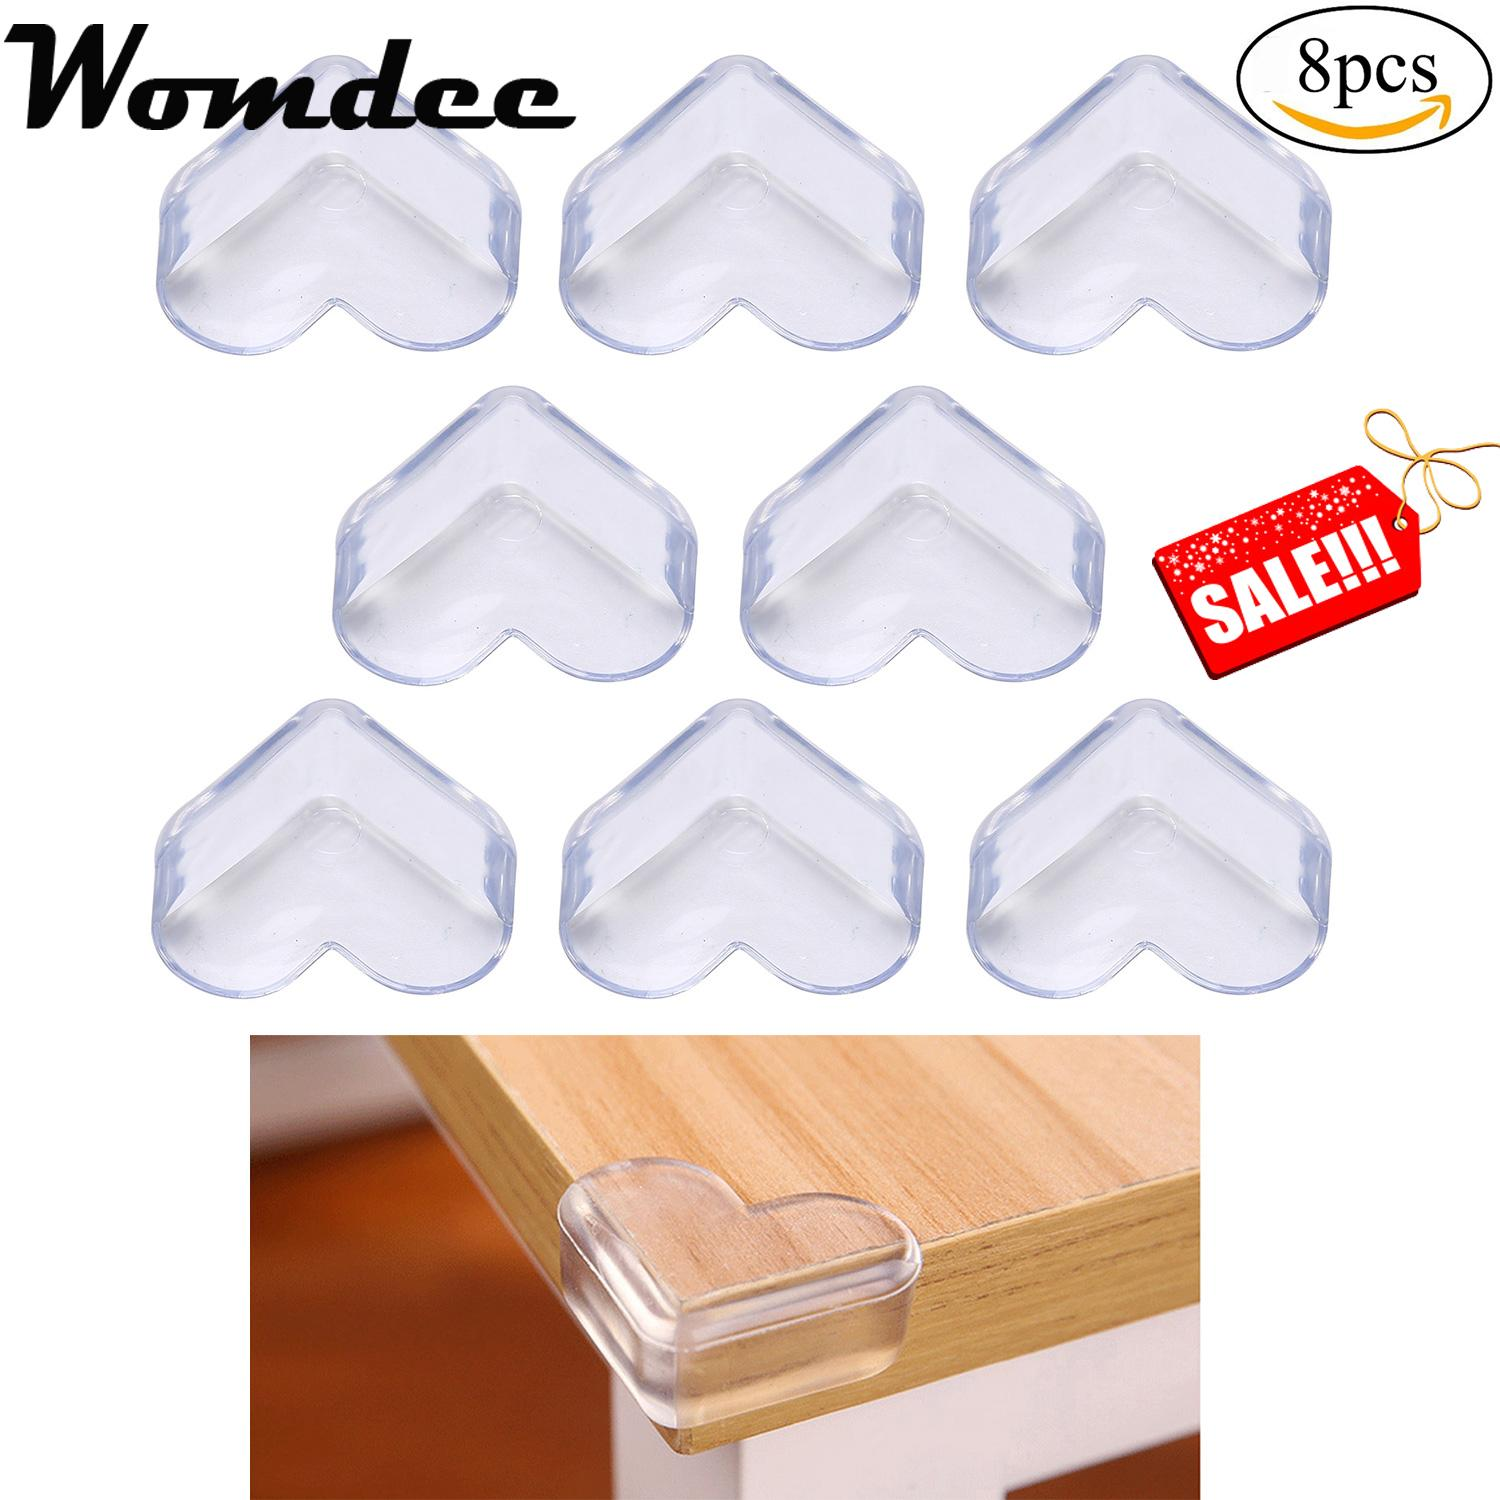 Womdee Soft Proofing Corner Guards, Clear Edge Proof Protectors Table  Bumpers Cover Furniture, Sharp